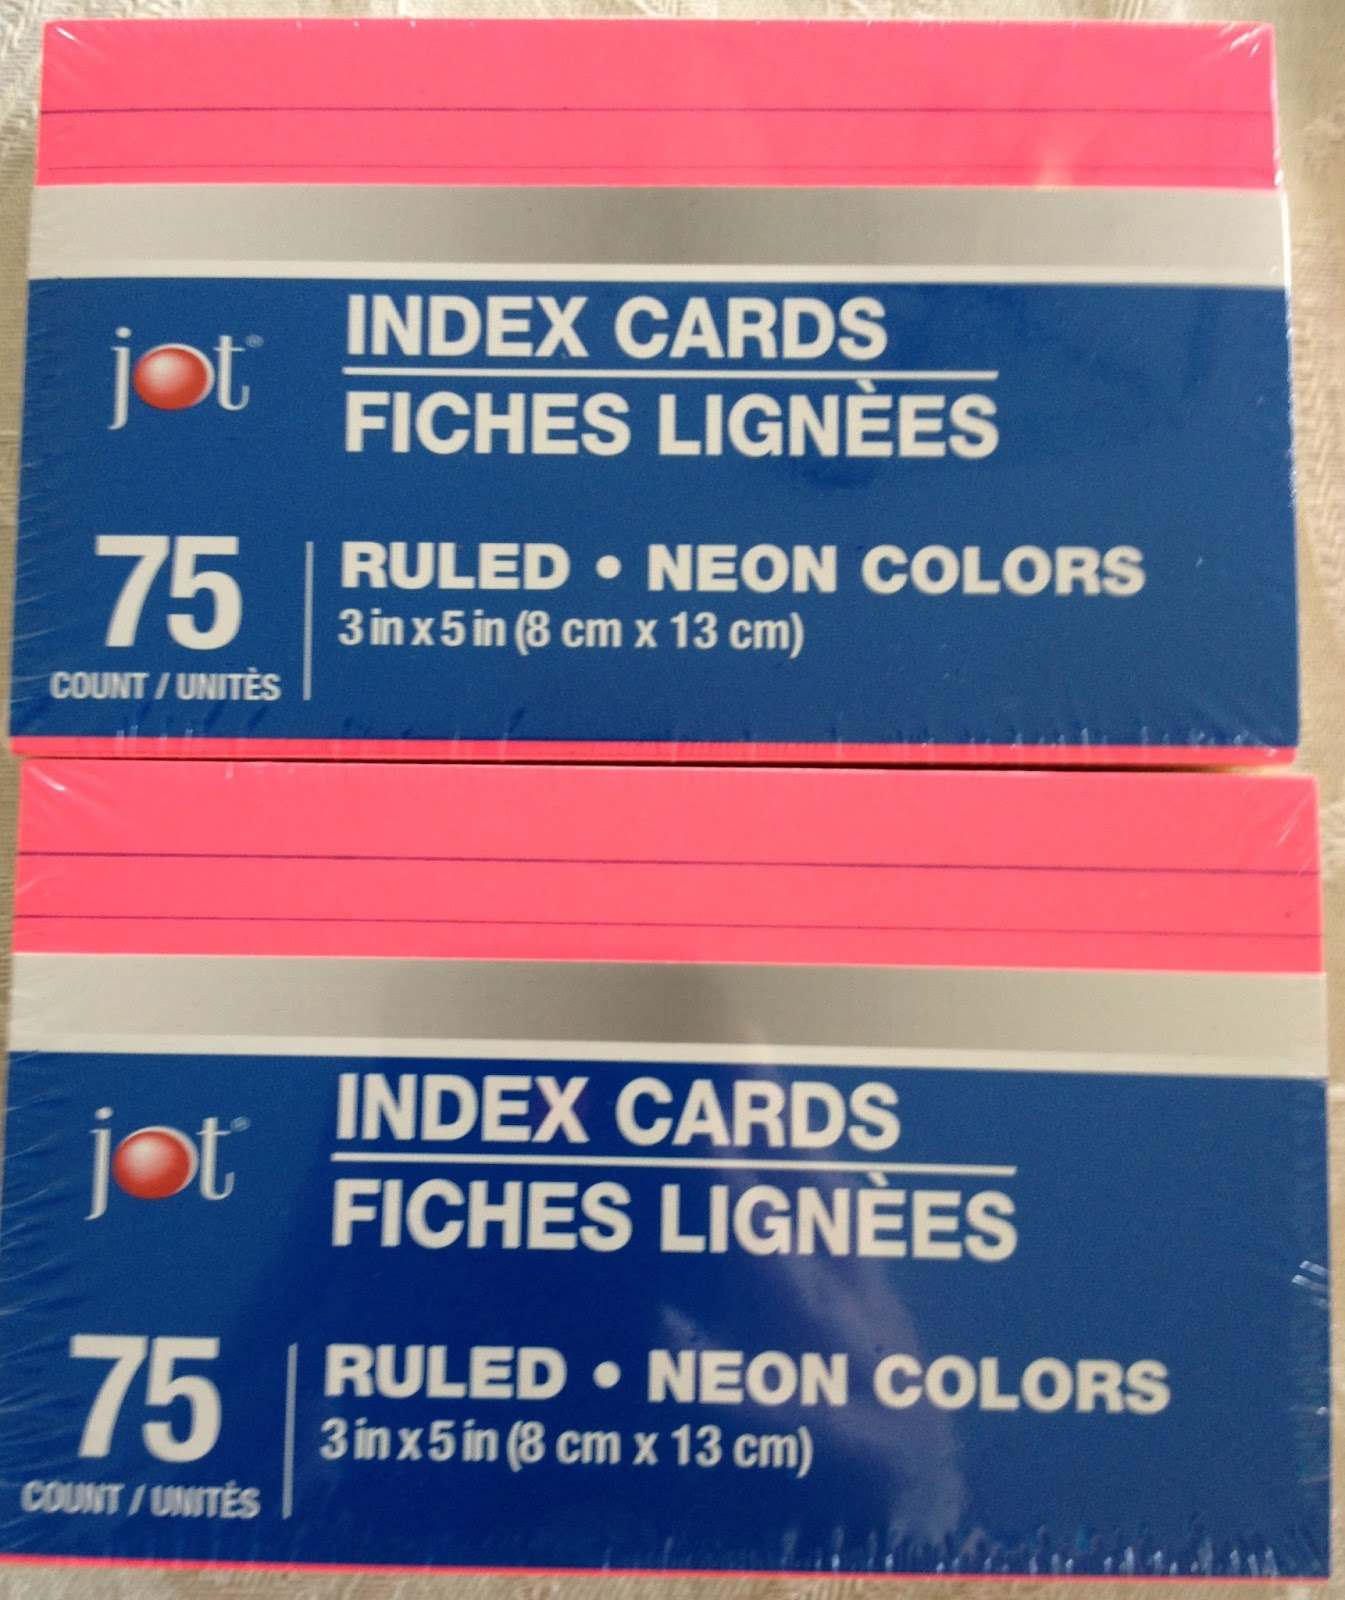 300 Index Cards: Index Cards At Dollar Tree